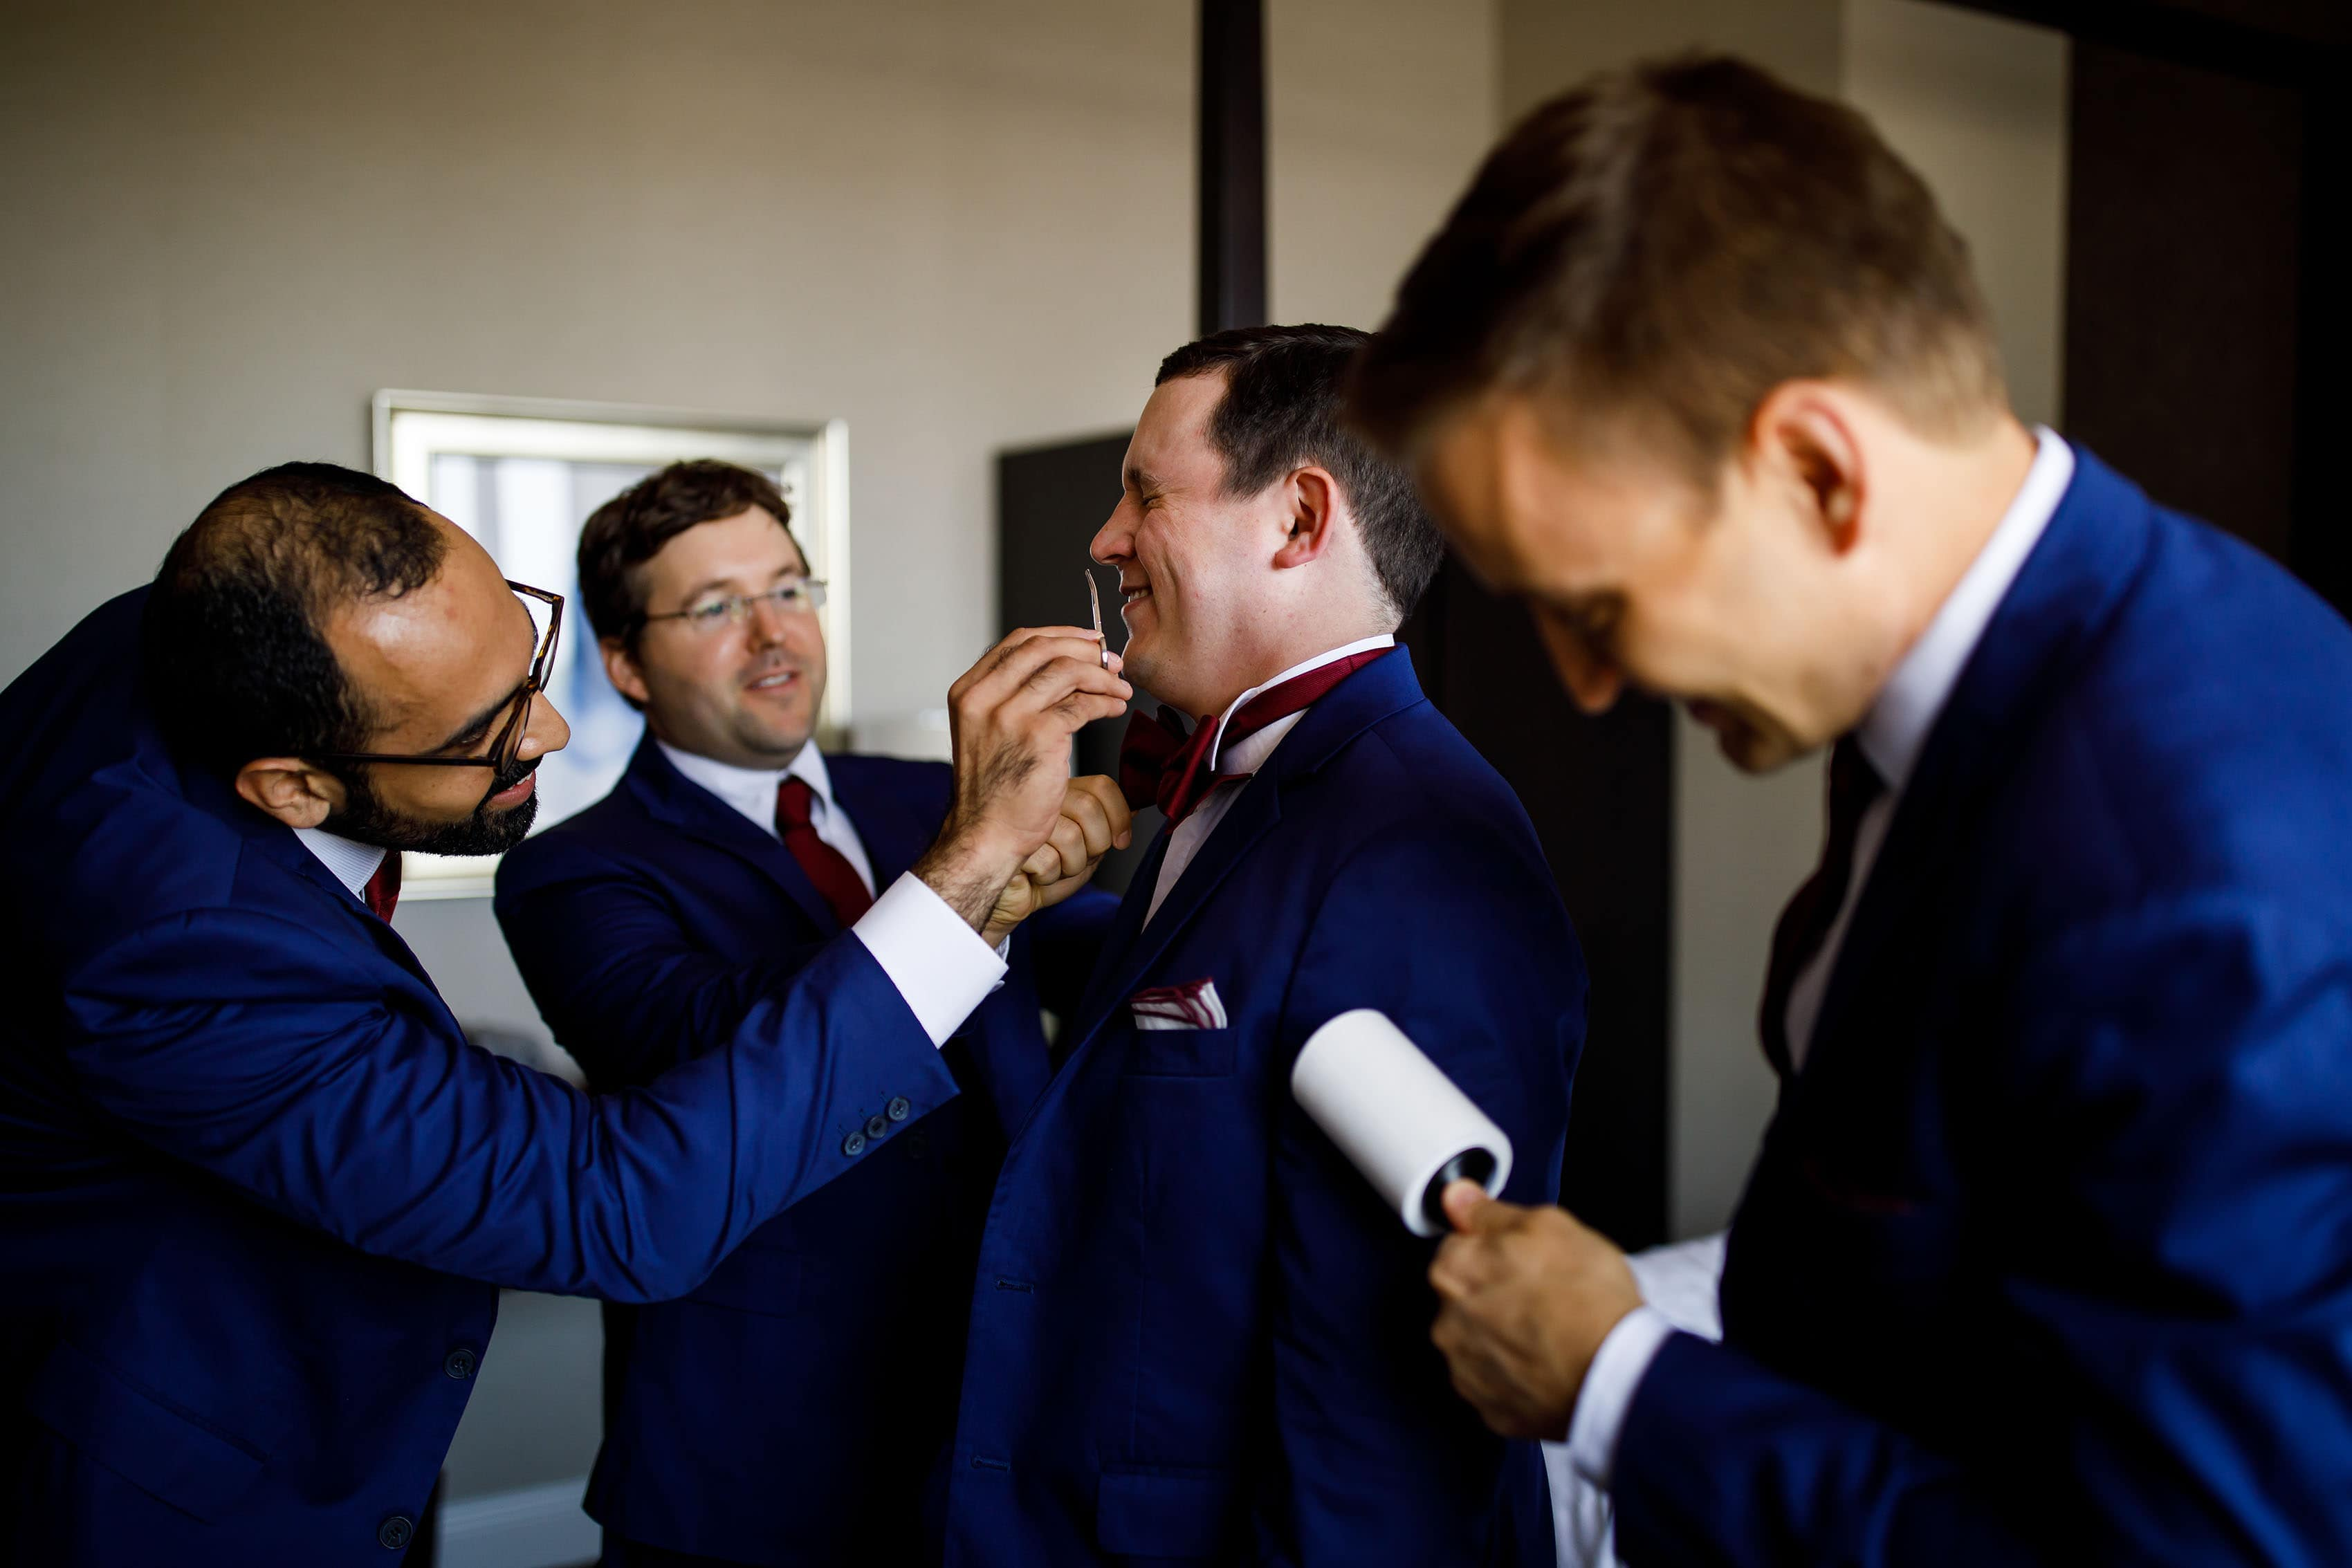 The groom receives some help from his groomsmen while getting ready for the wedding at La Banque hotel